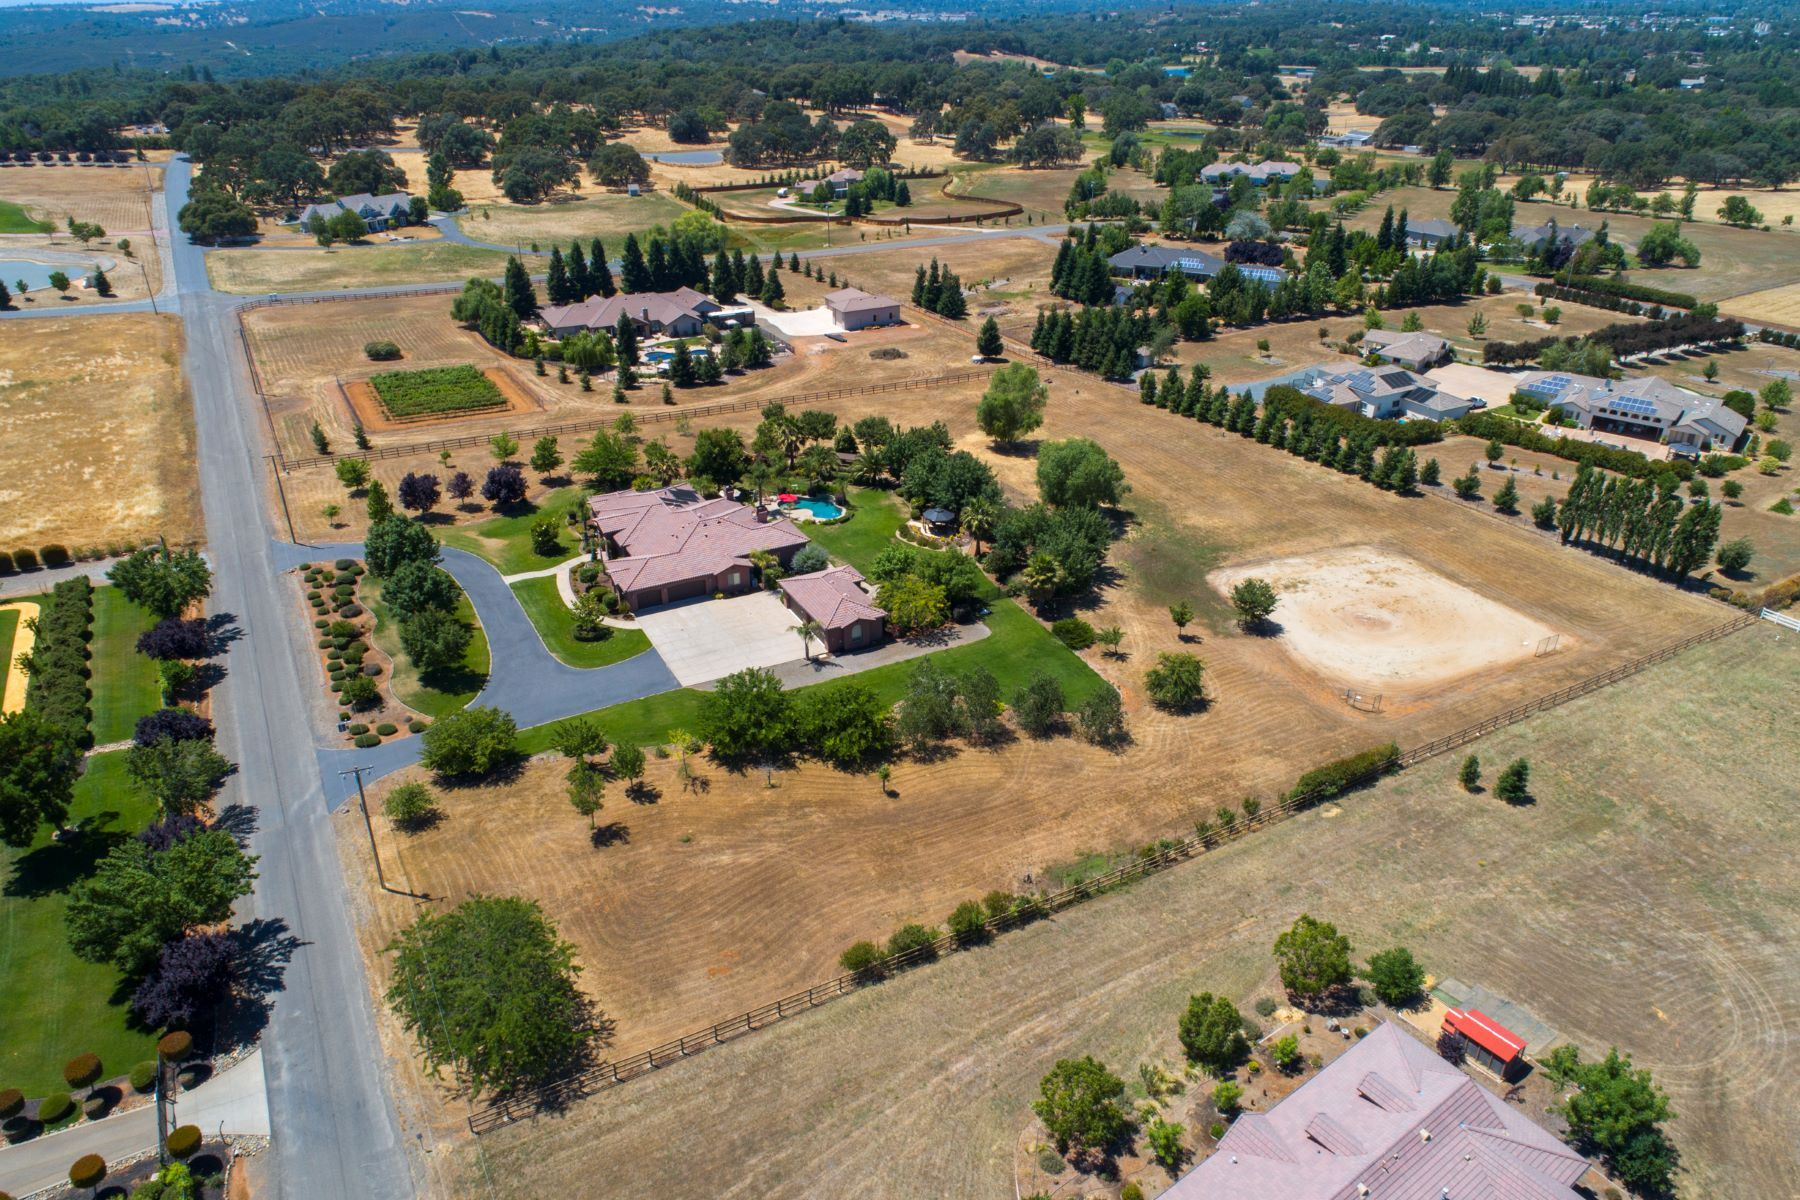 Single Family Home for Active at 5040 Milton Ranch Road, Shingle Springs CA 95682 5040 Milton Ranch Rd. Shingle Springs, California 95682 United States